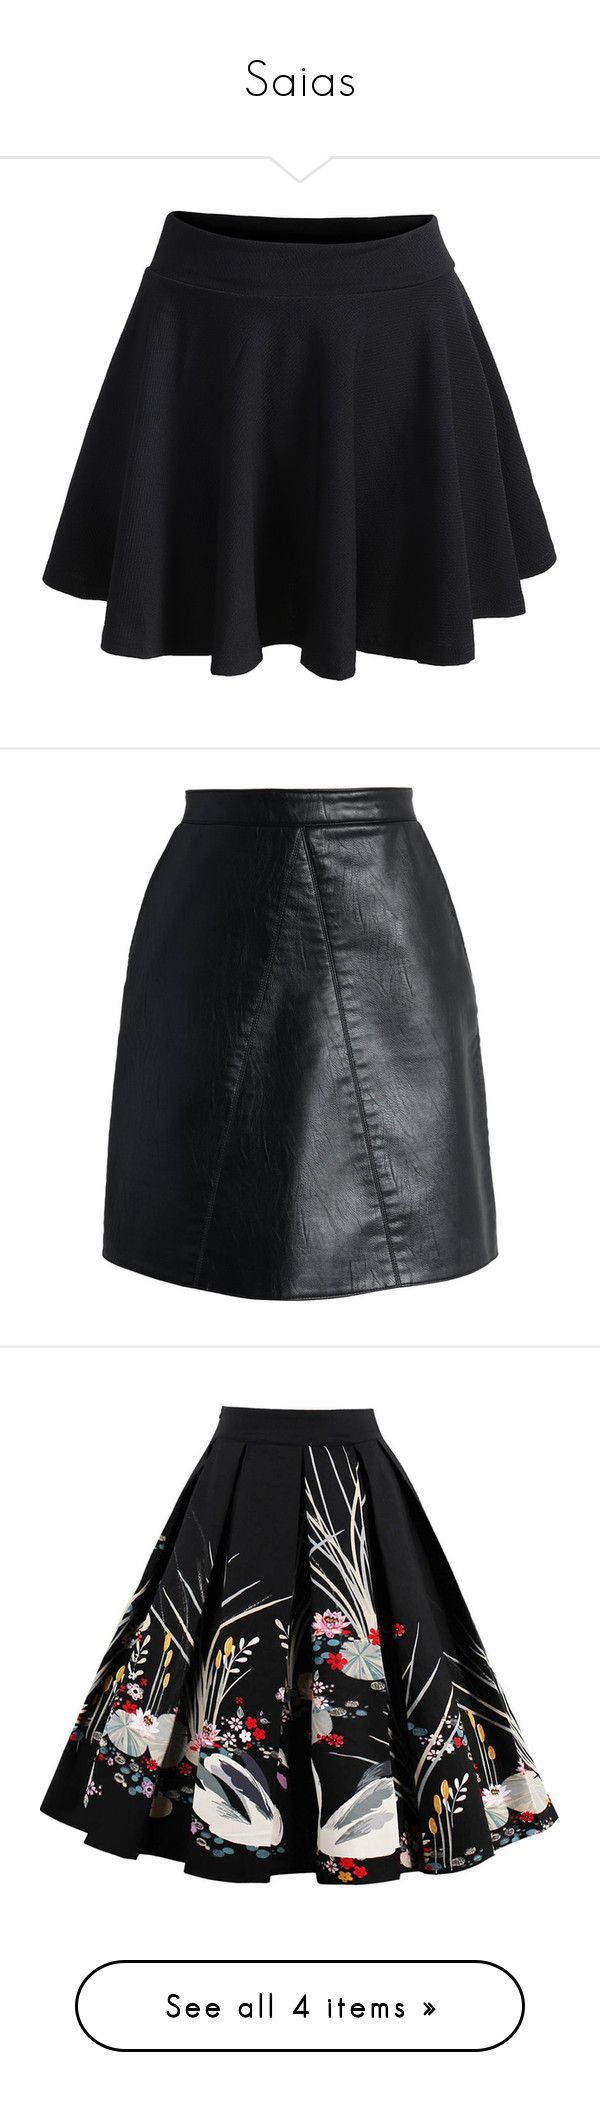 Saias by cassimila on Polyvore featuring polyvore women's fashion clothing skirts bottoms saias black elastic waistband skirt knee length pleated skirt stretch waist skirt short summer skirts elastic waist skirt fake leather skirt chicwish skirts leather look skirt faux leather skirt vegan leather skirt gonne a-line skirts floral midi skirt floral pleated skirt cotton midi skirt a line midi skirt flare skirt flared skirts knee length flared skirts flared hem skirt midi skirt